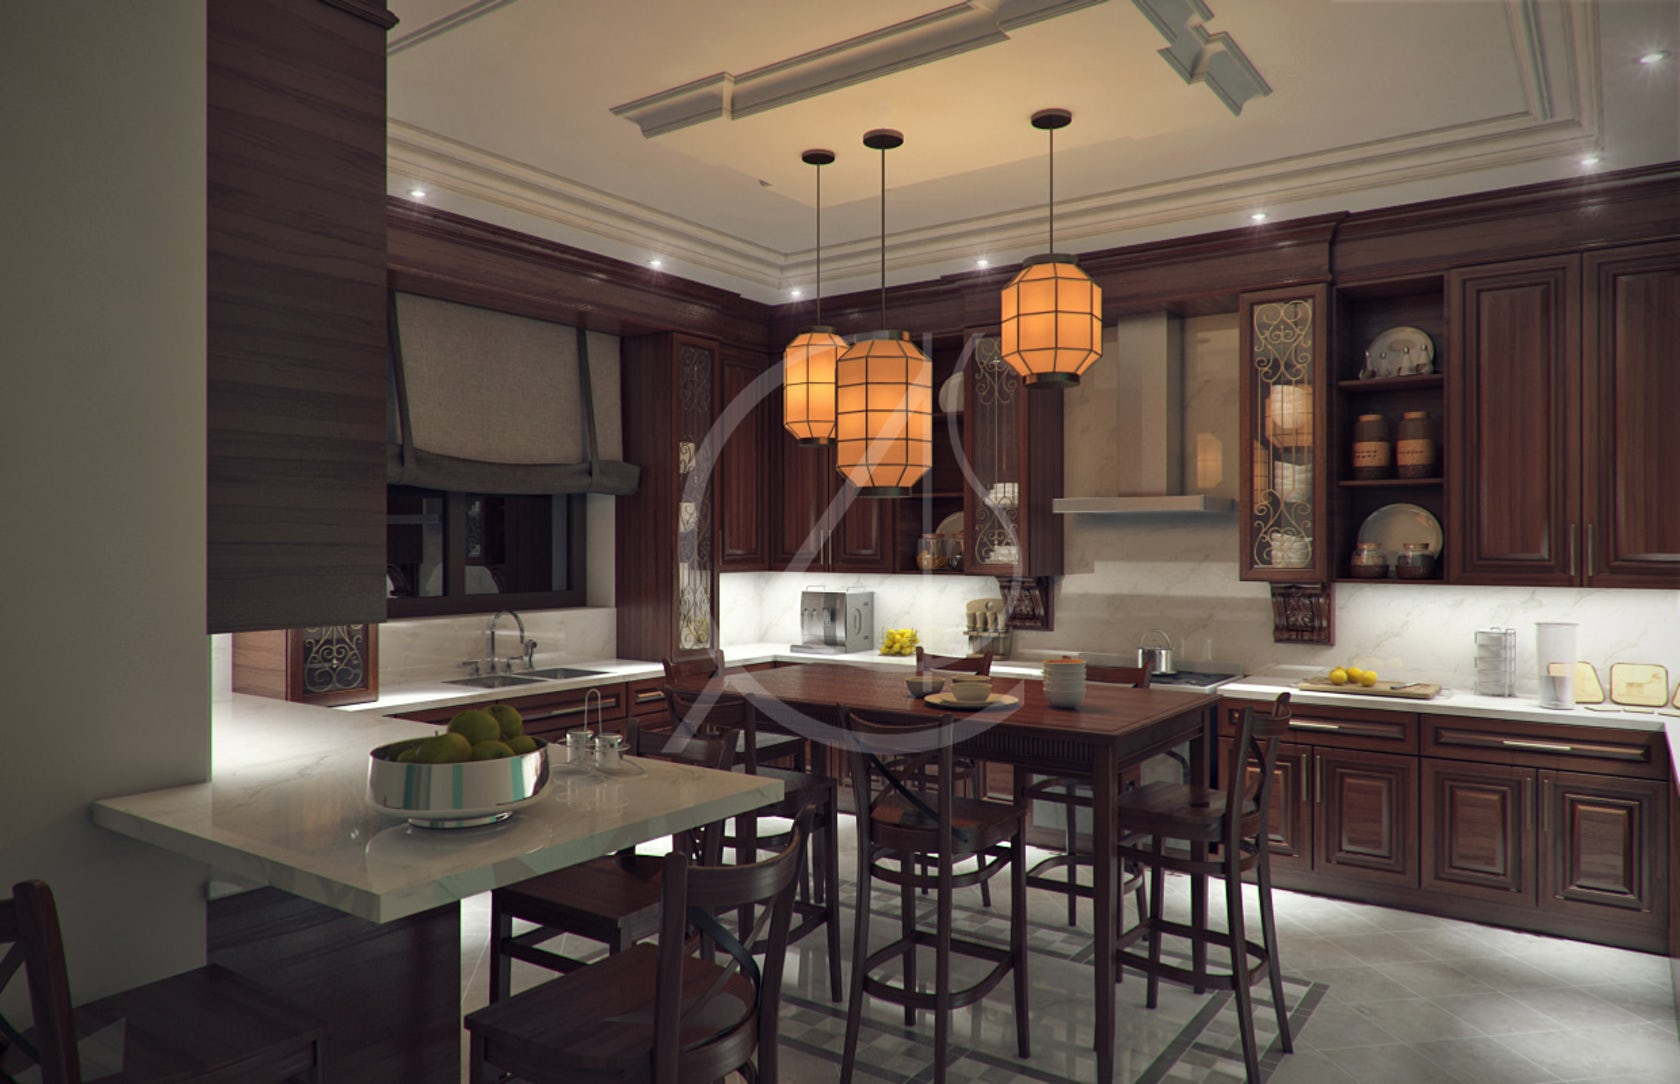 Traditional Home Interior Design House Of Samples New: Luxury Kerala House Traditional Interior Design